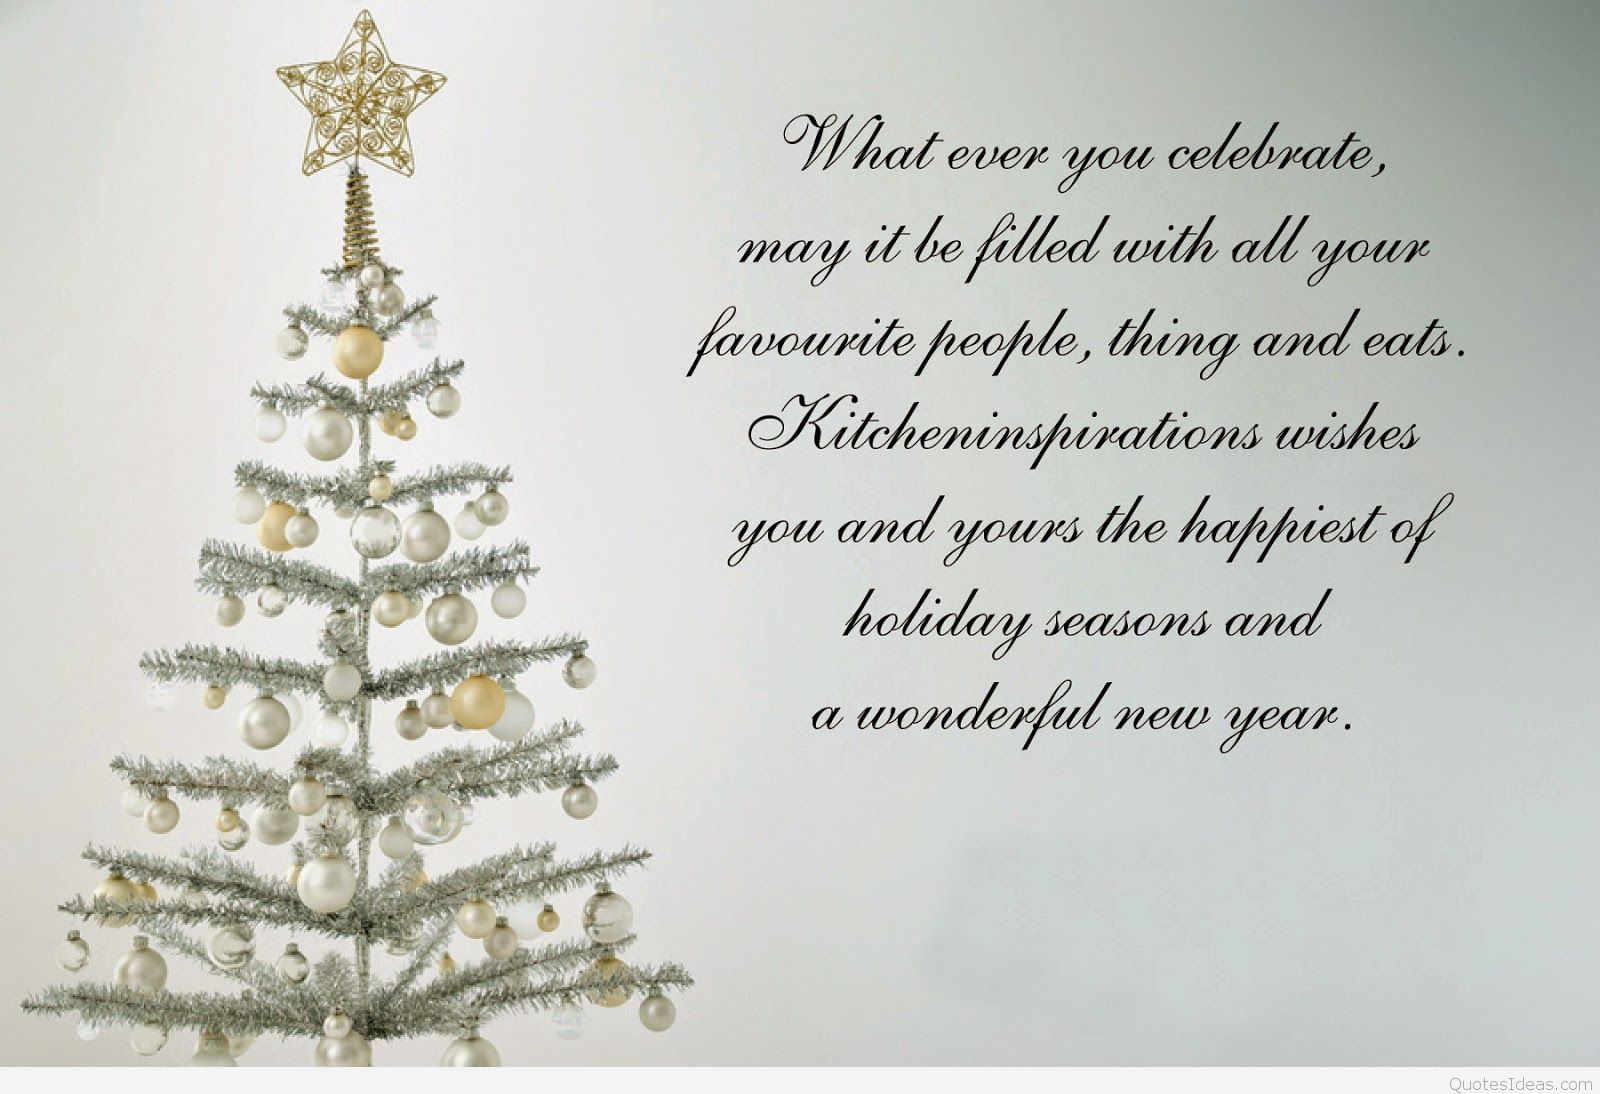 Wallpaper Christmas Eve Quote Hd Christmas Wallpaper With Quotes 1600x1094 Wallpaper Teahub Io